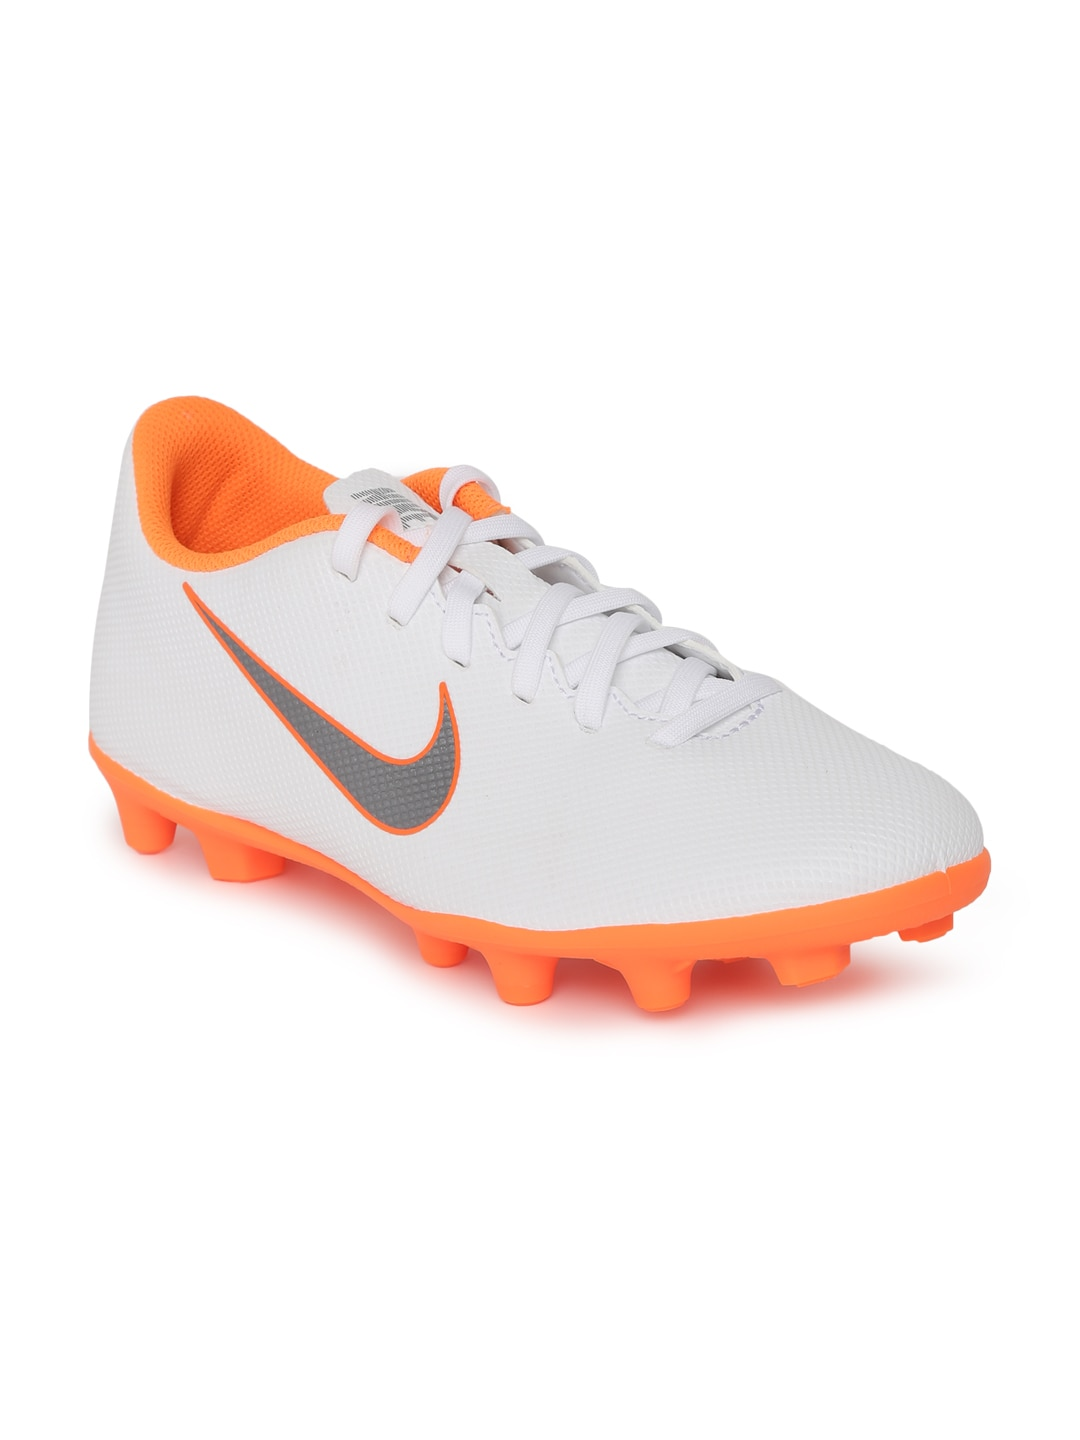 89ff7cb067b Nike Sport Shoe - Buy Nike Sport Shoes At Best Price Online